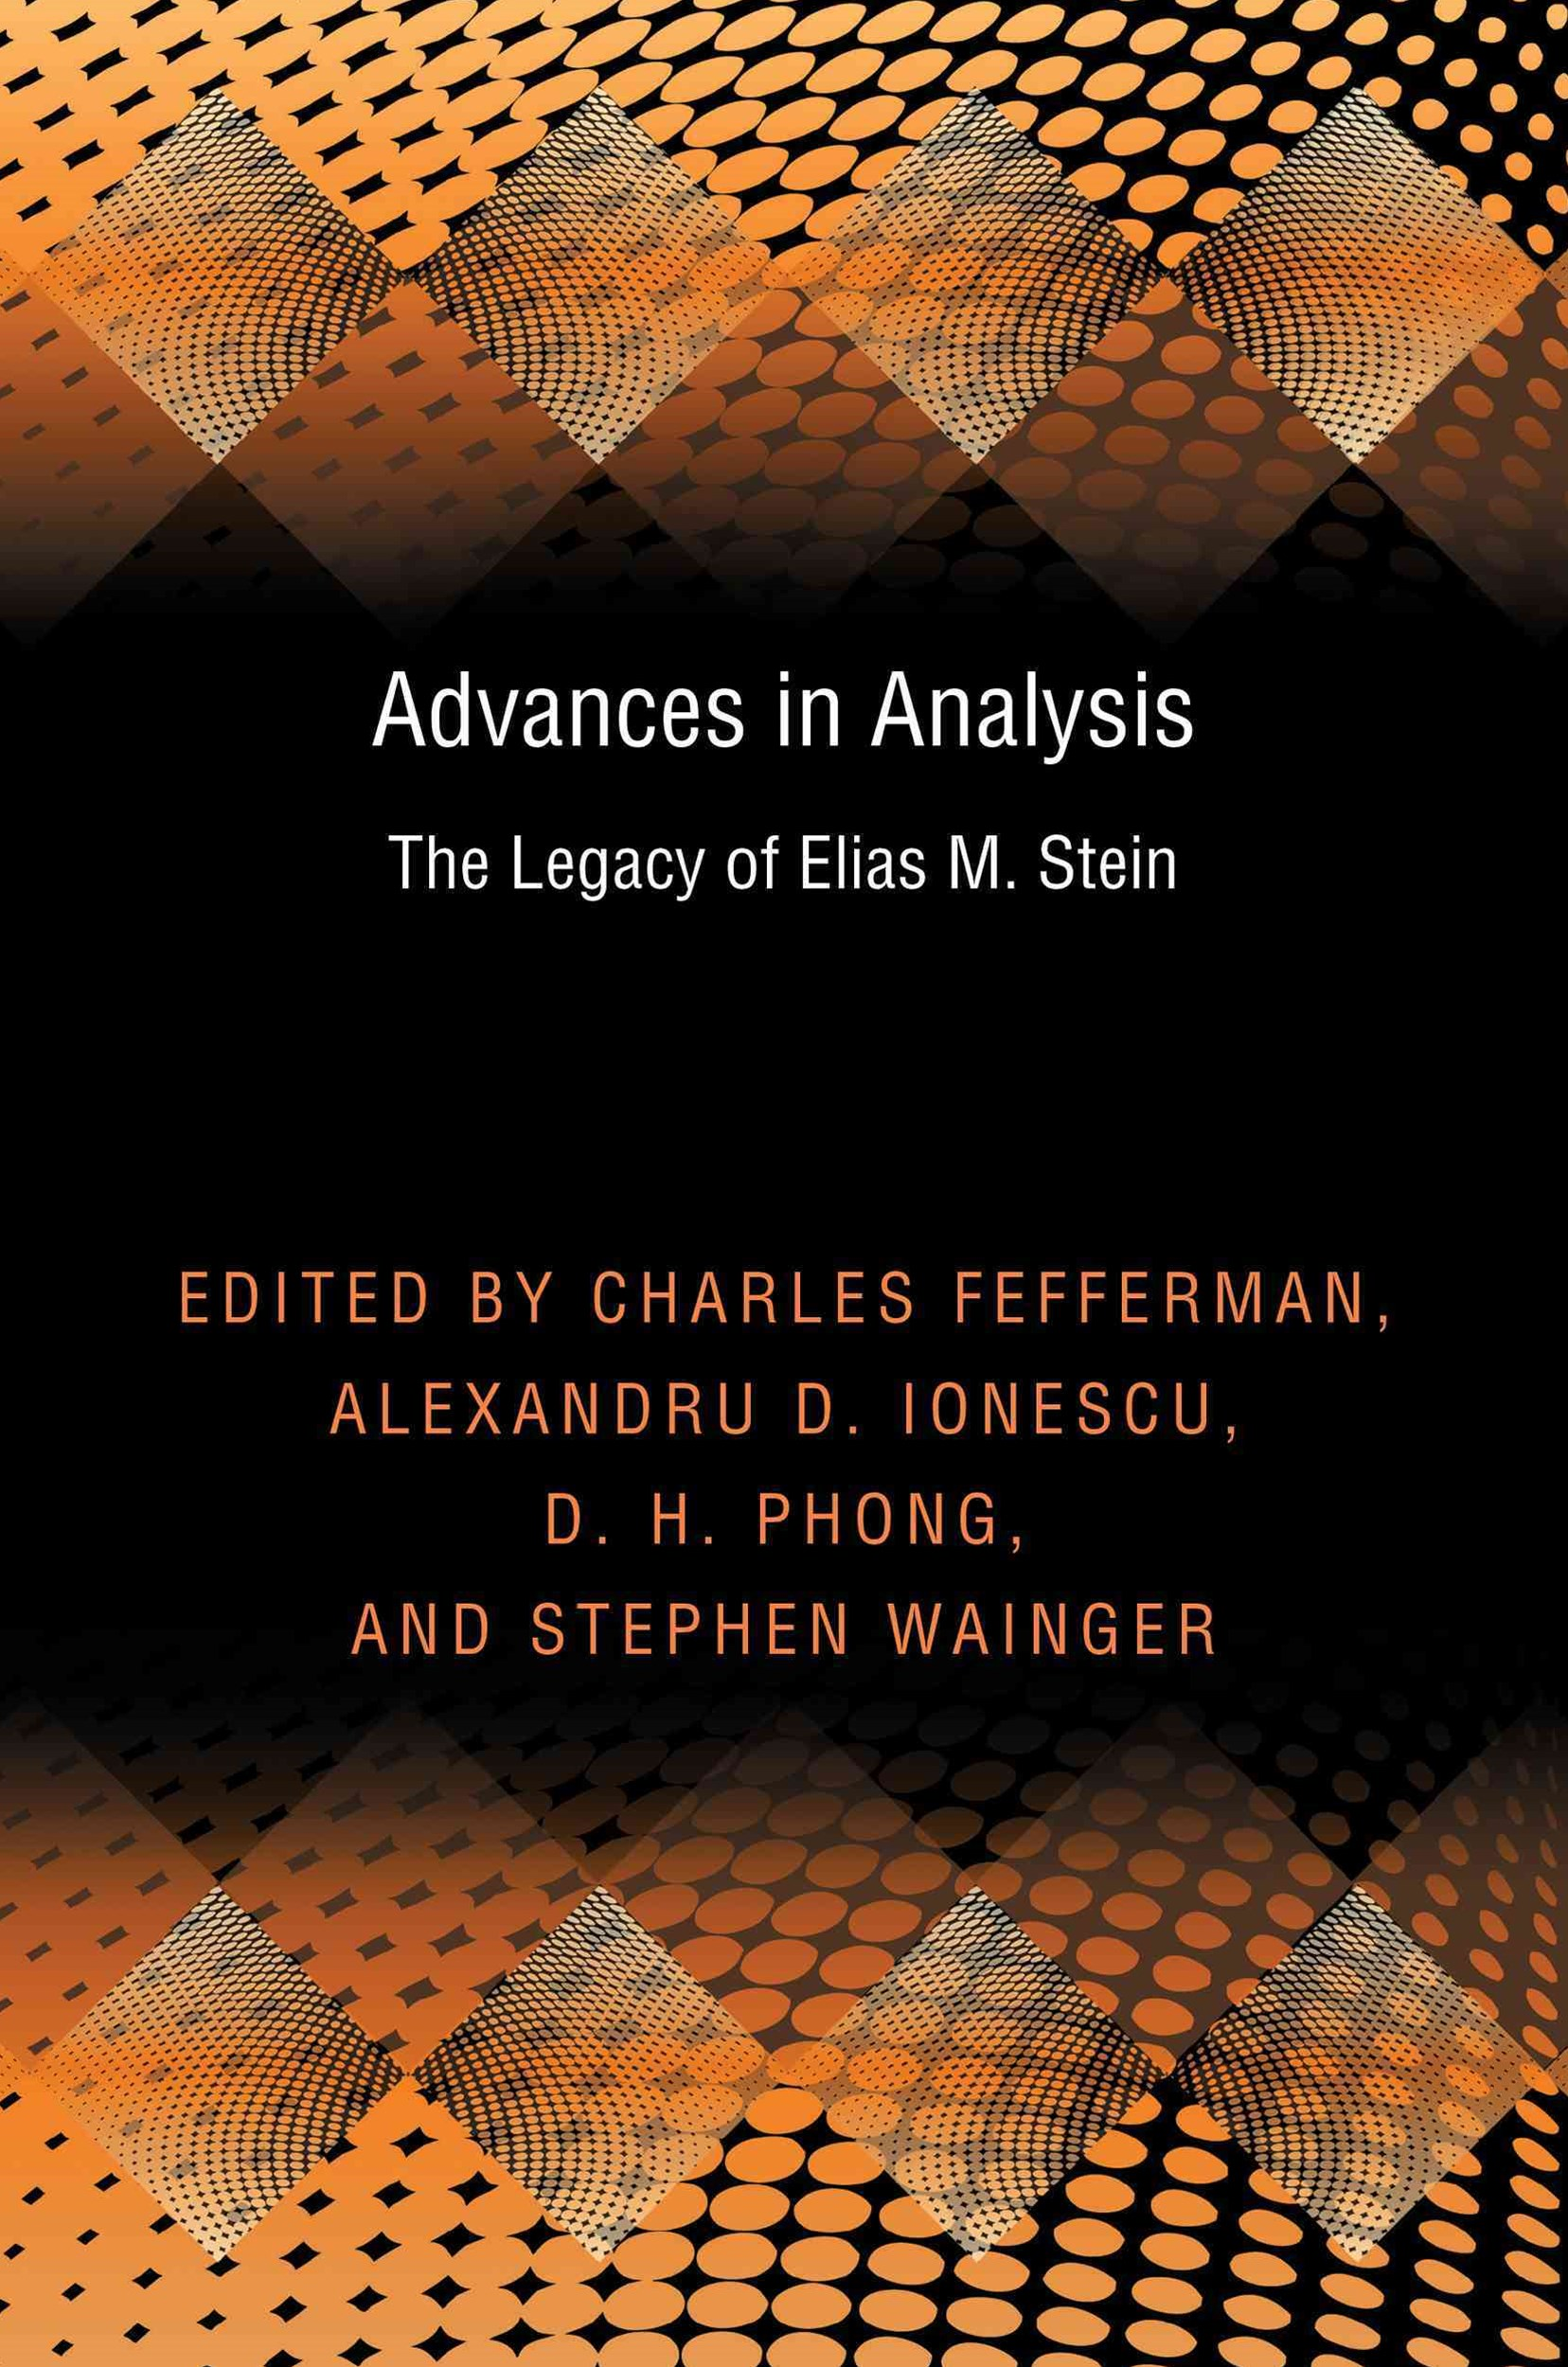 Advances in Analysis